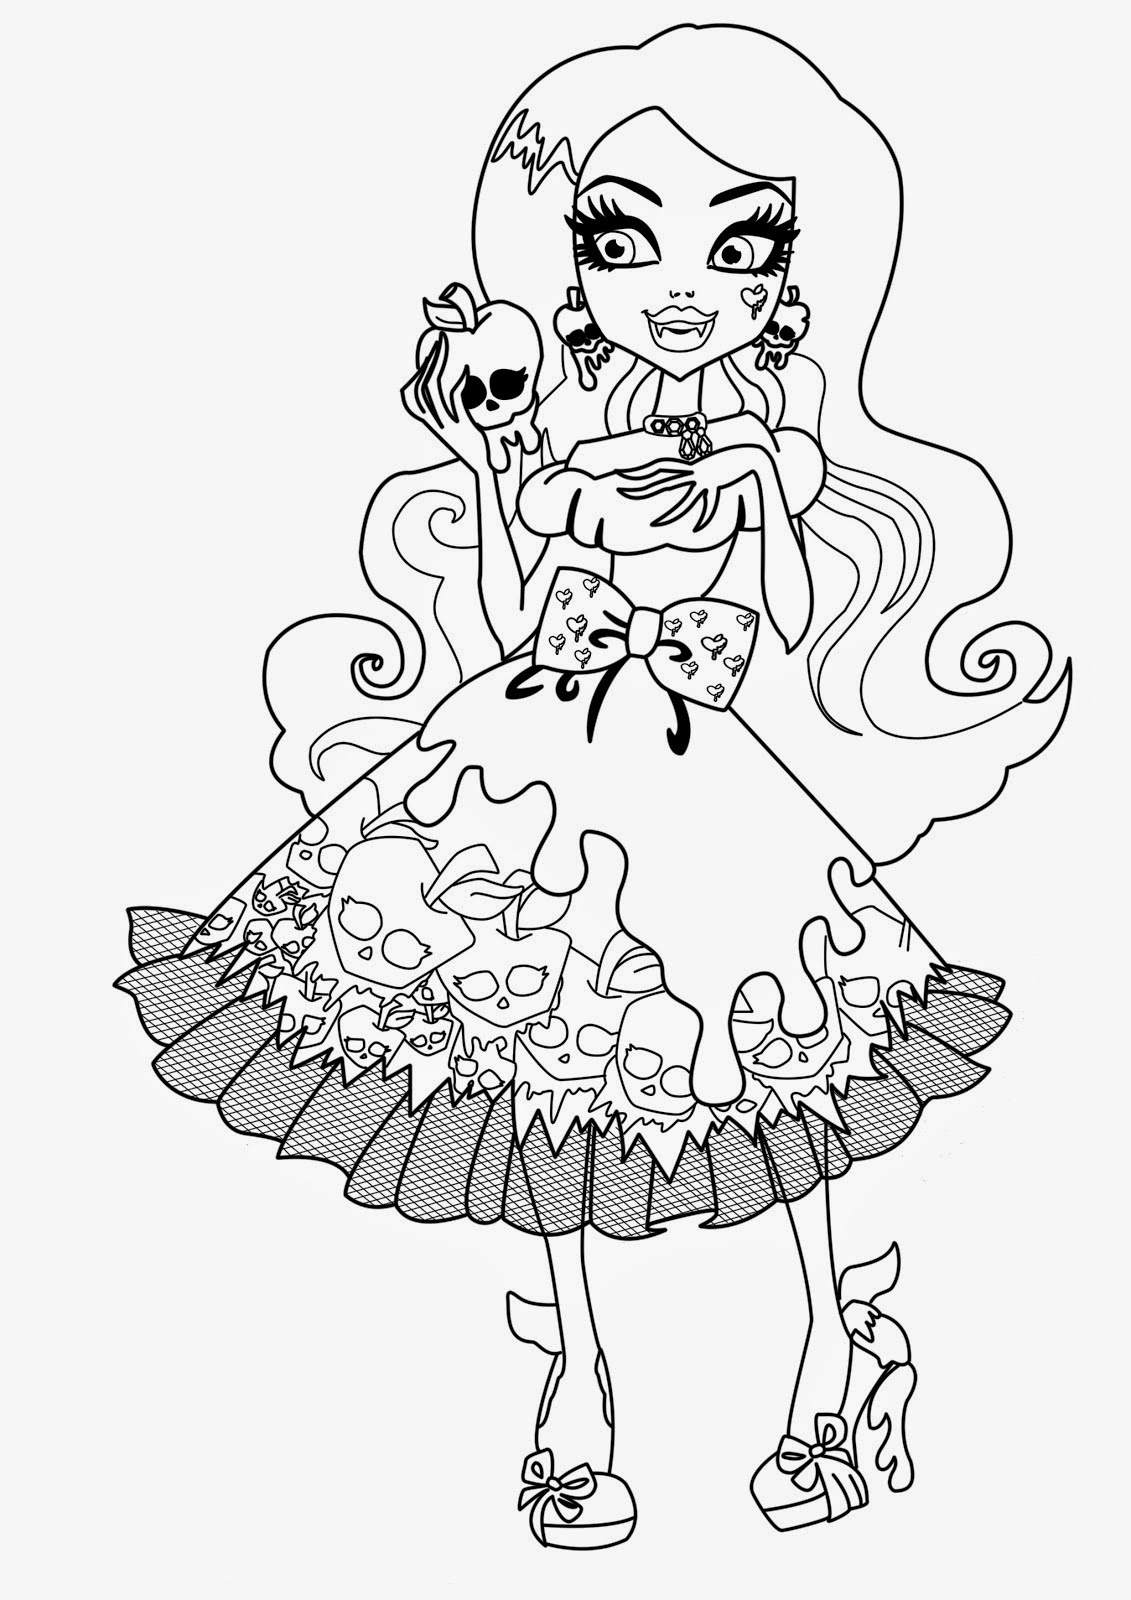 free printable monster high coloring pages 37 best images about colouring monster high on pinterest free monster high pages printable coloring